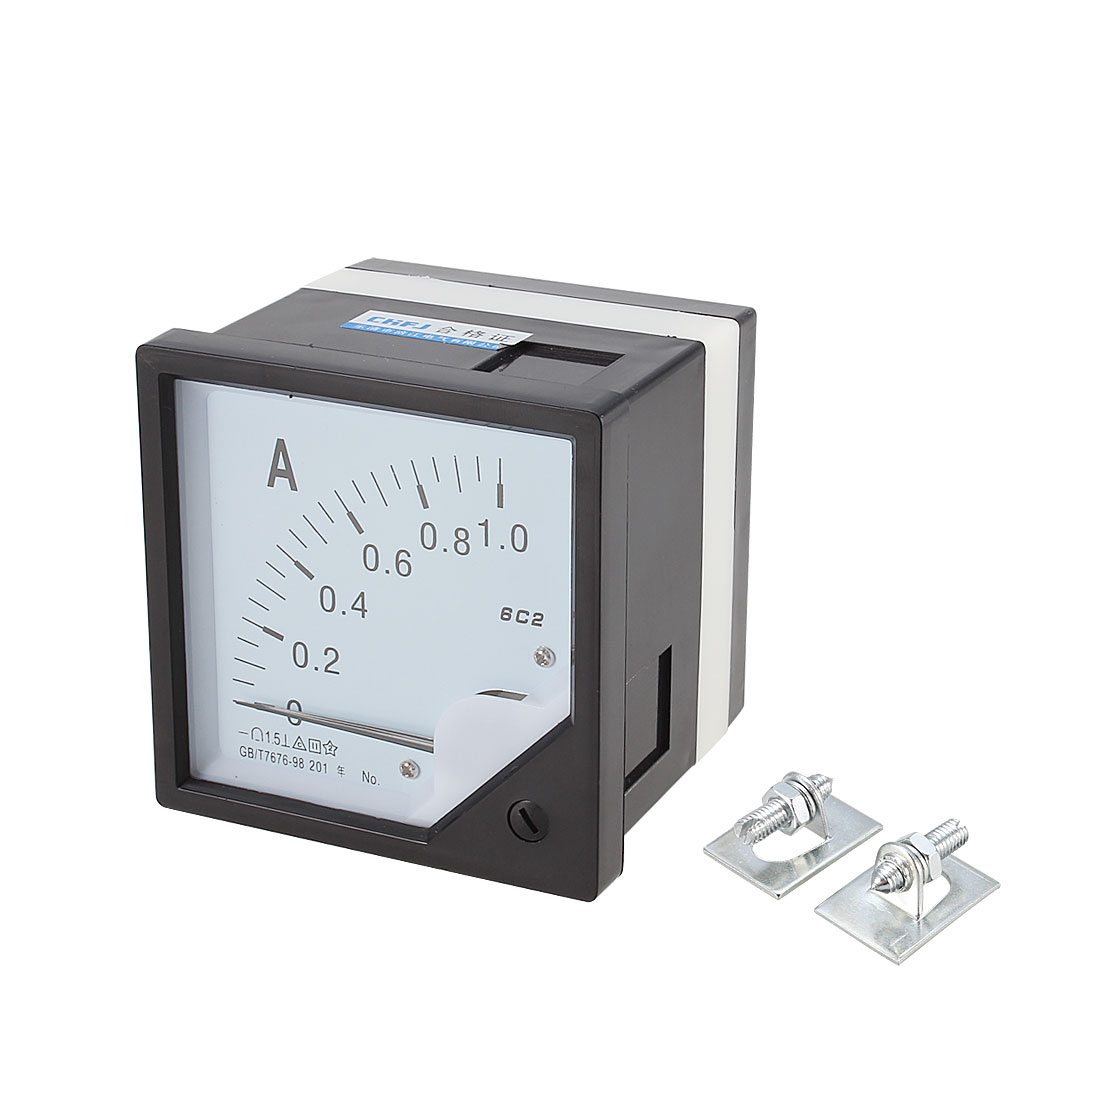 DC 0-1A Class 1.5 Current Measuring Panel Mounting Analog Meter Ammeter 6C2